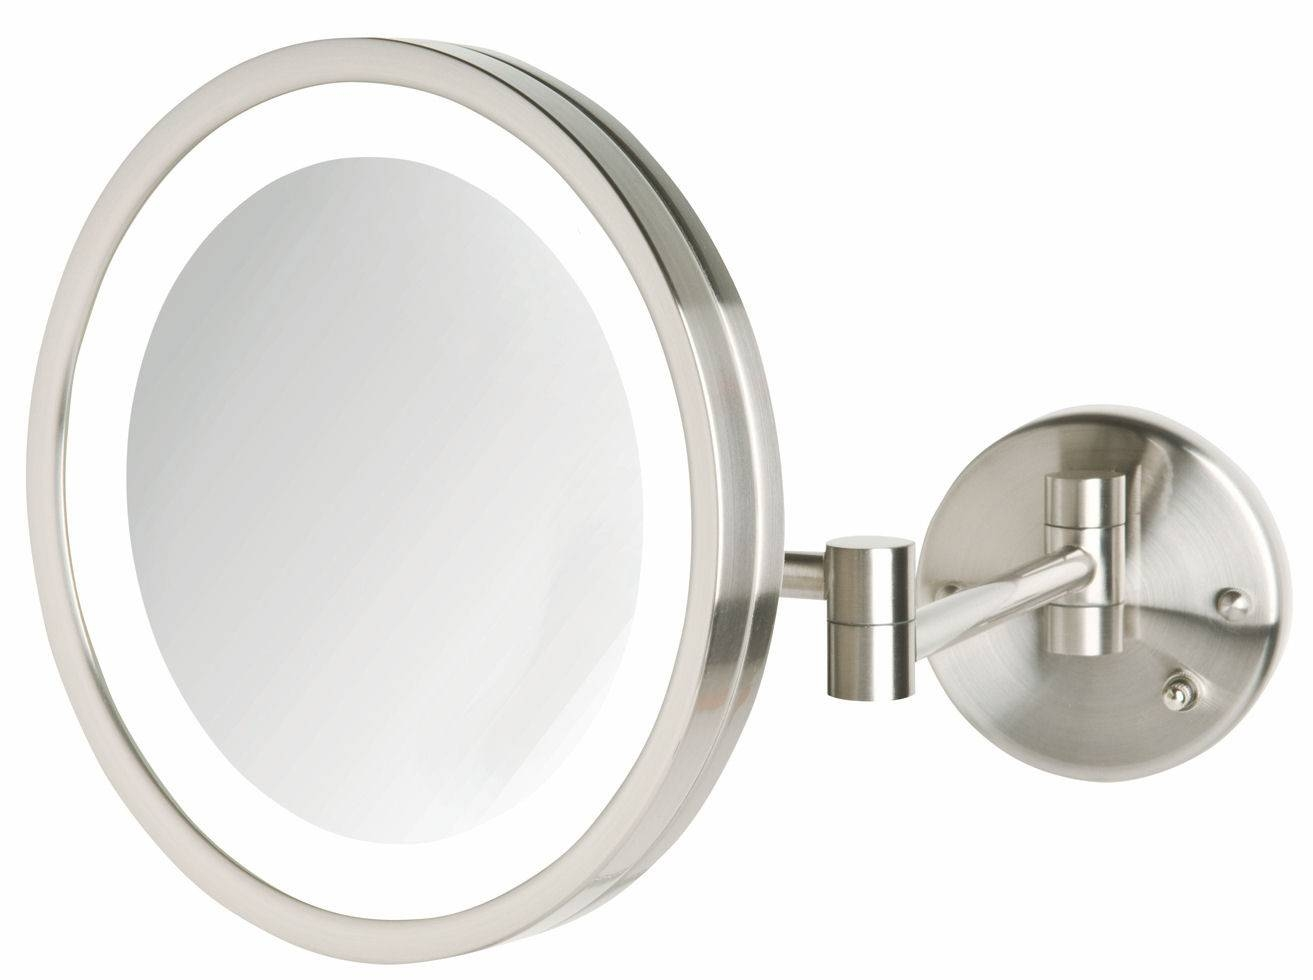 Gold Triple Oval Wall Mirror Contemporary Mirrors» Home Design with regard to Triple Oval Wall Mirrors (Image 7 of 25)